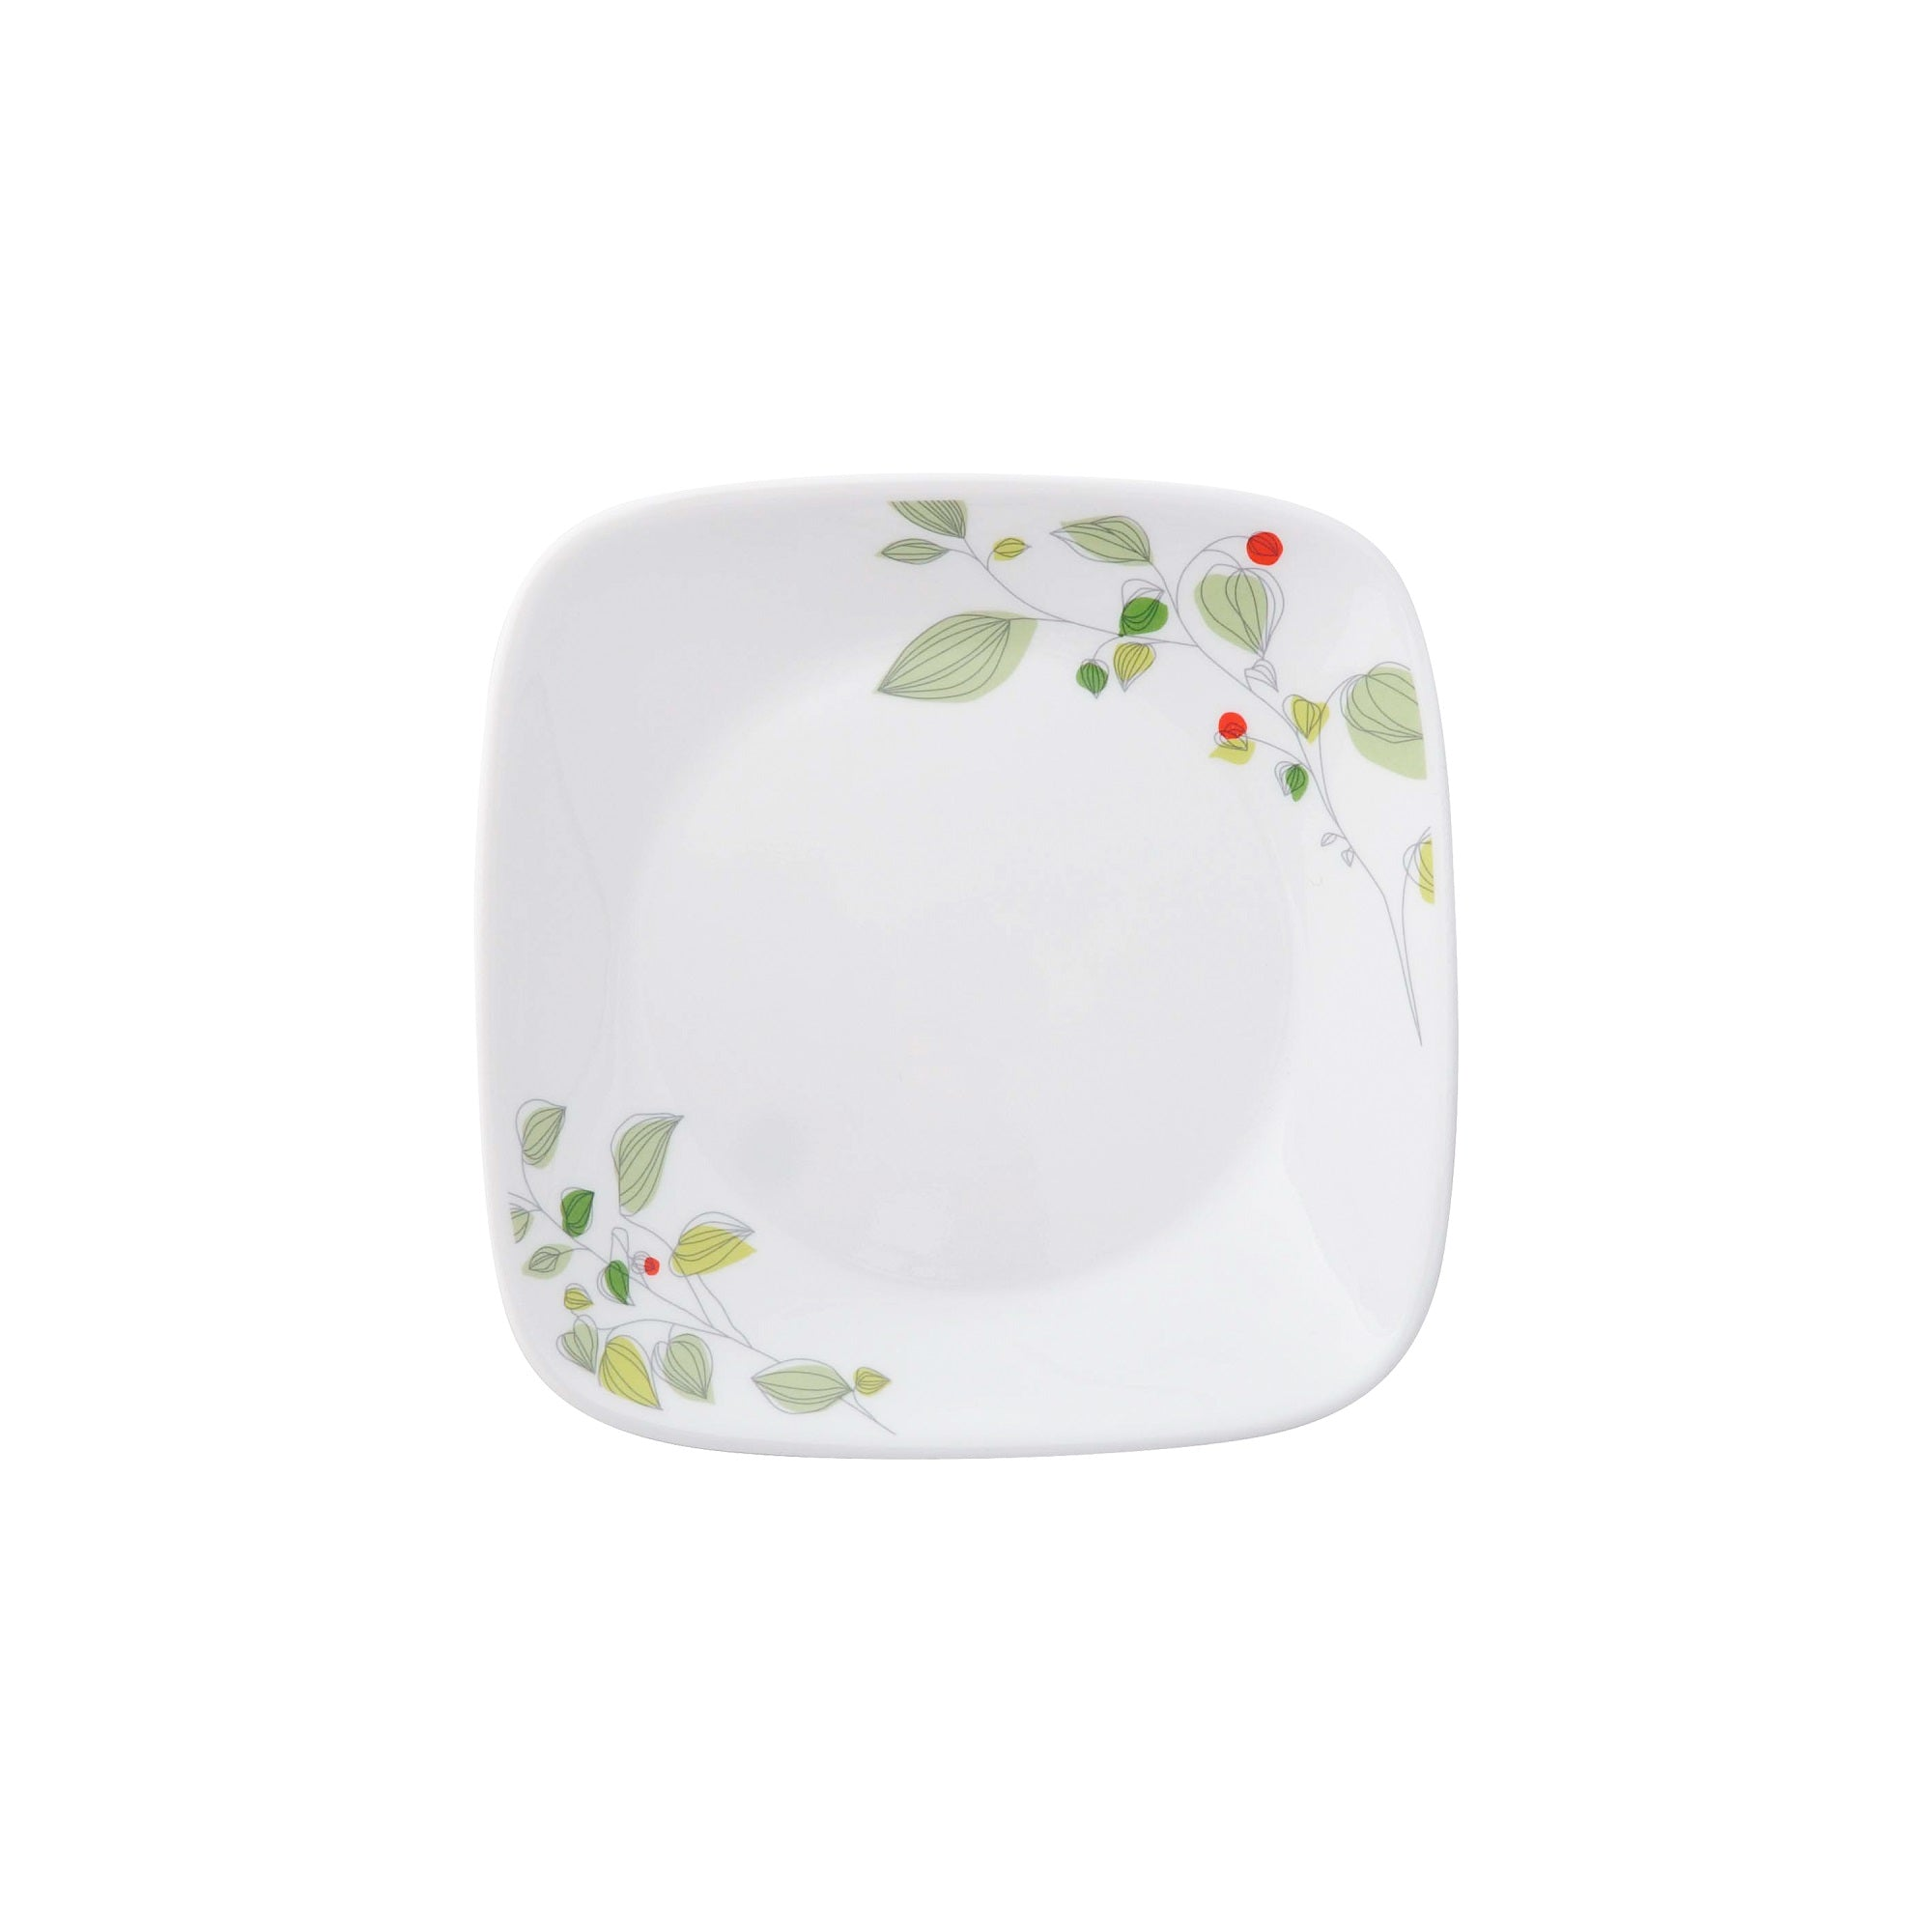 Corelle Deluxe Square Garden Breeze 16.5cm Bread & Butter Plate-2206-GB-LP